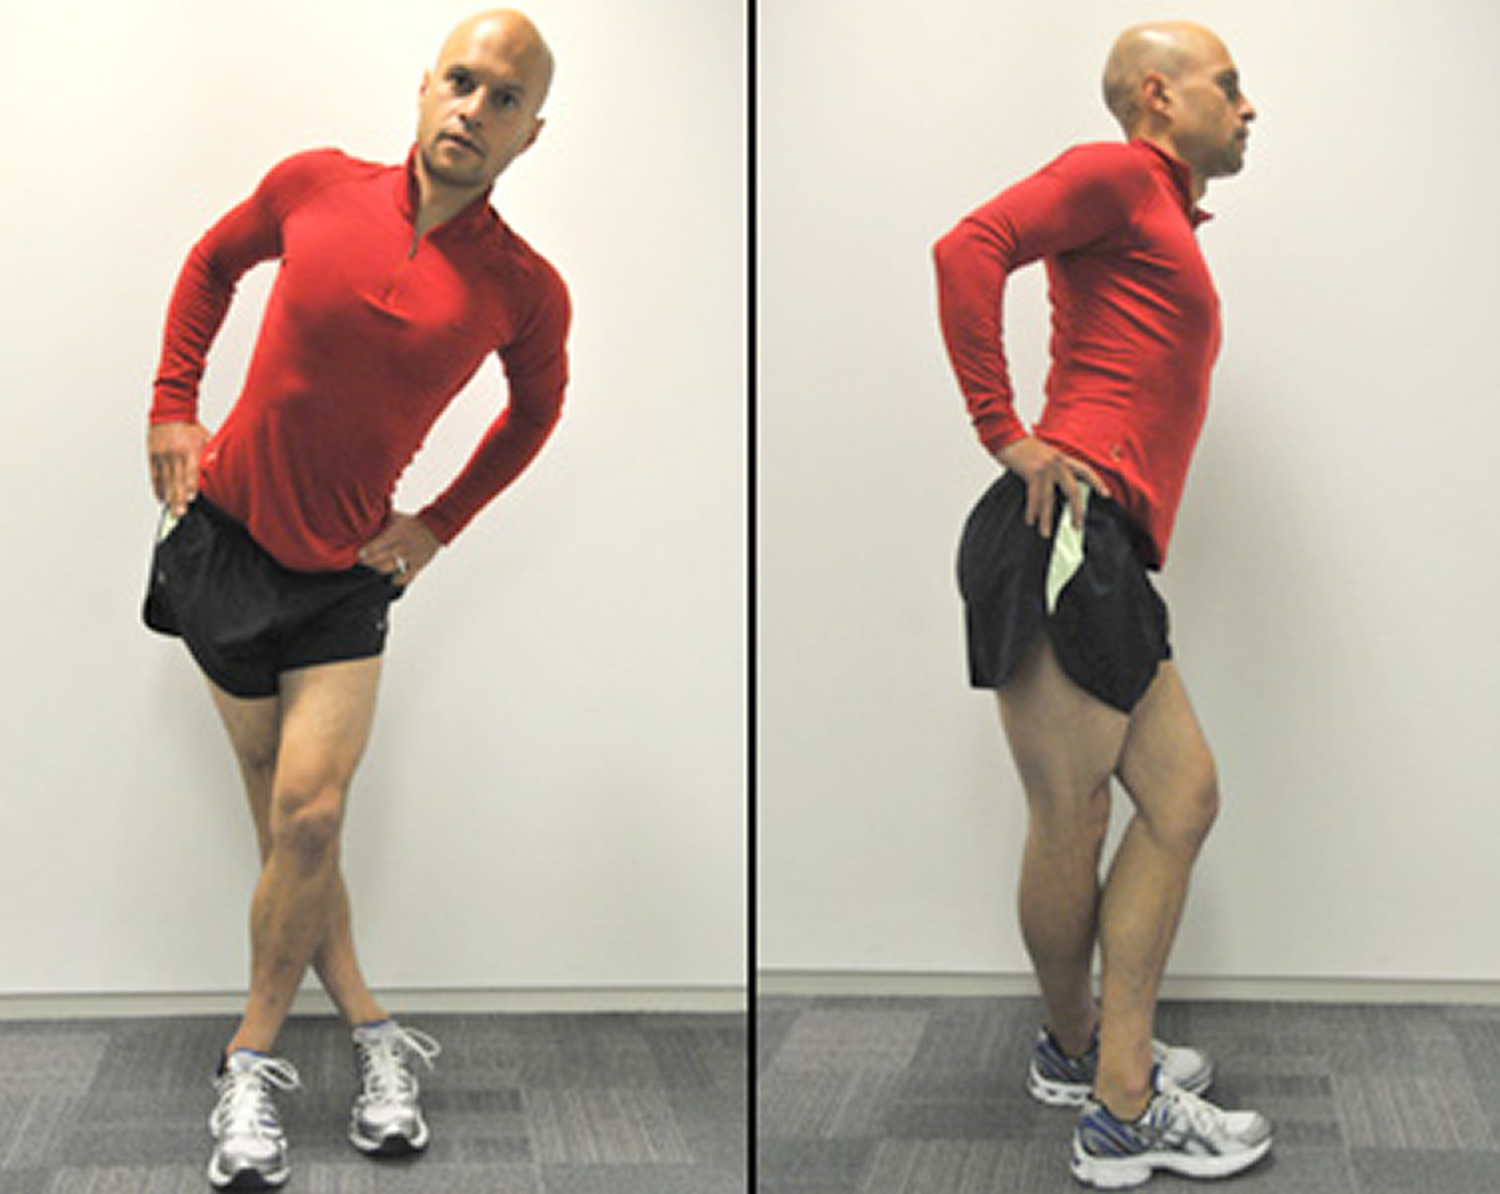 Iliotibial band stretch for knee pain